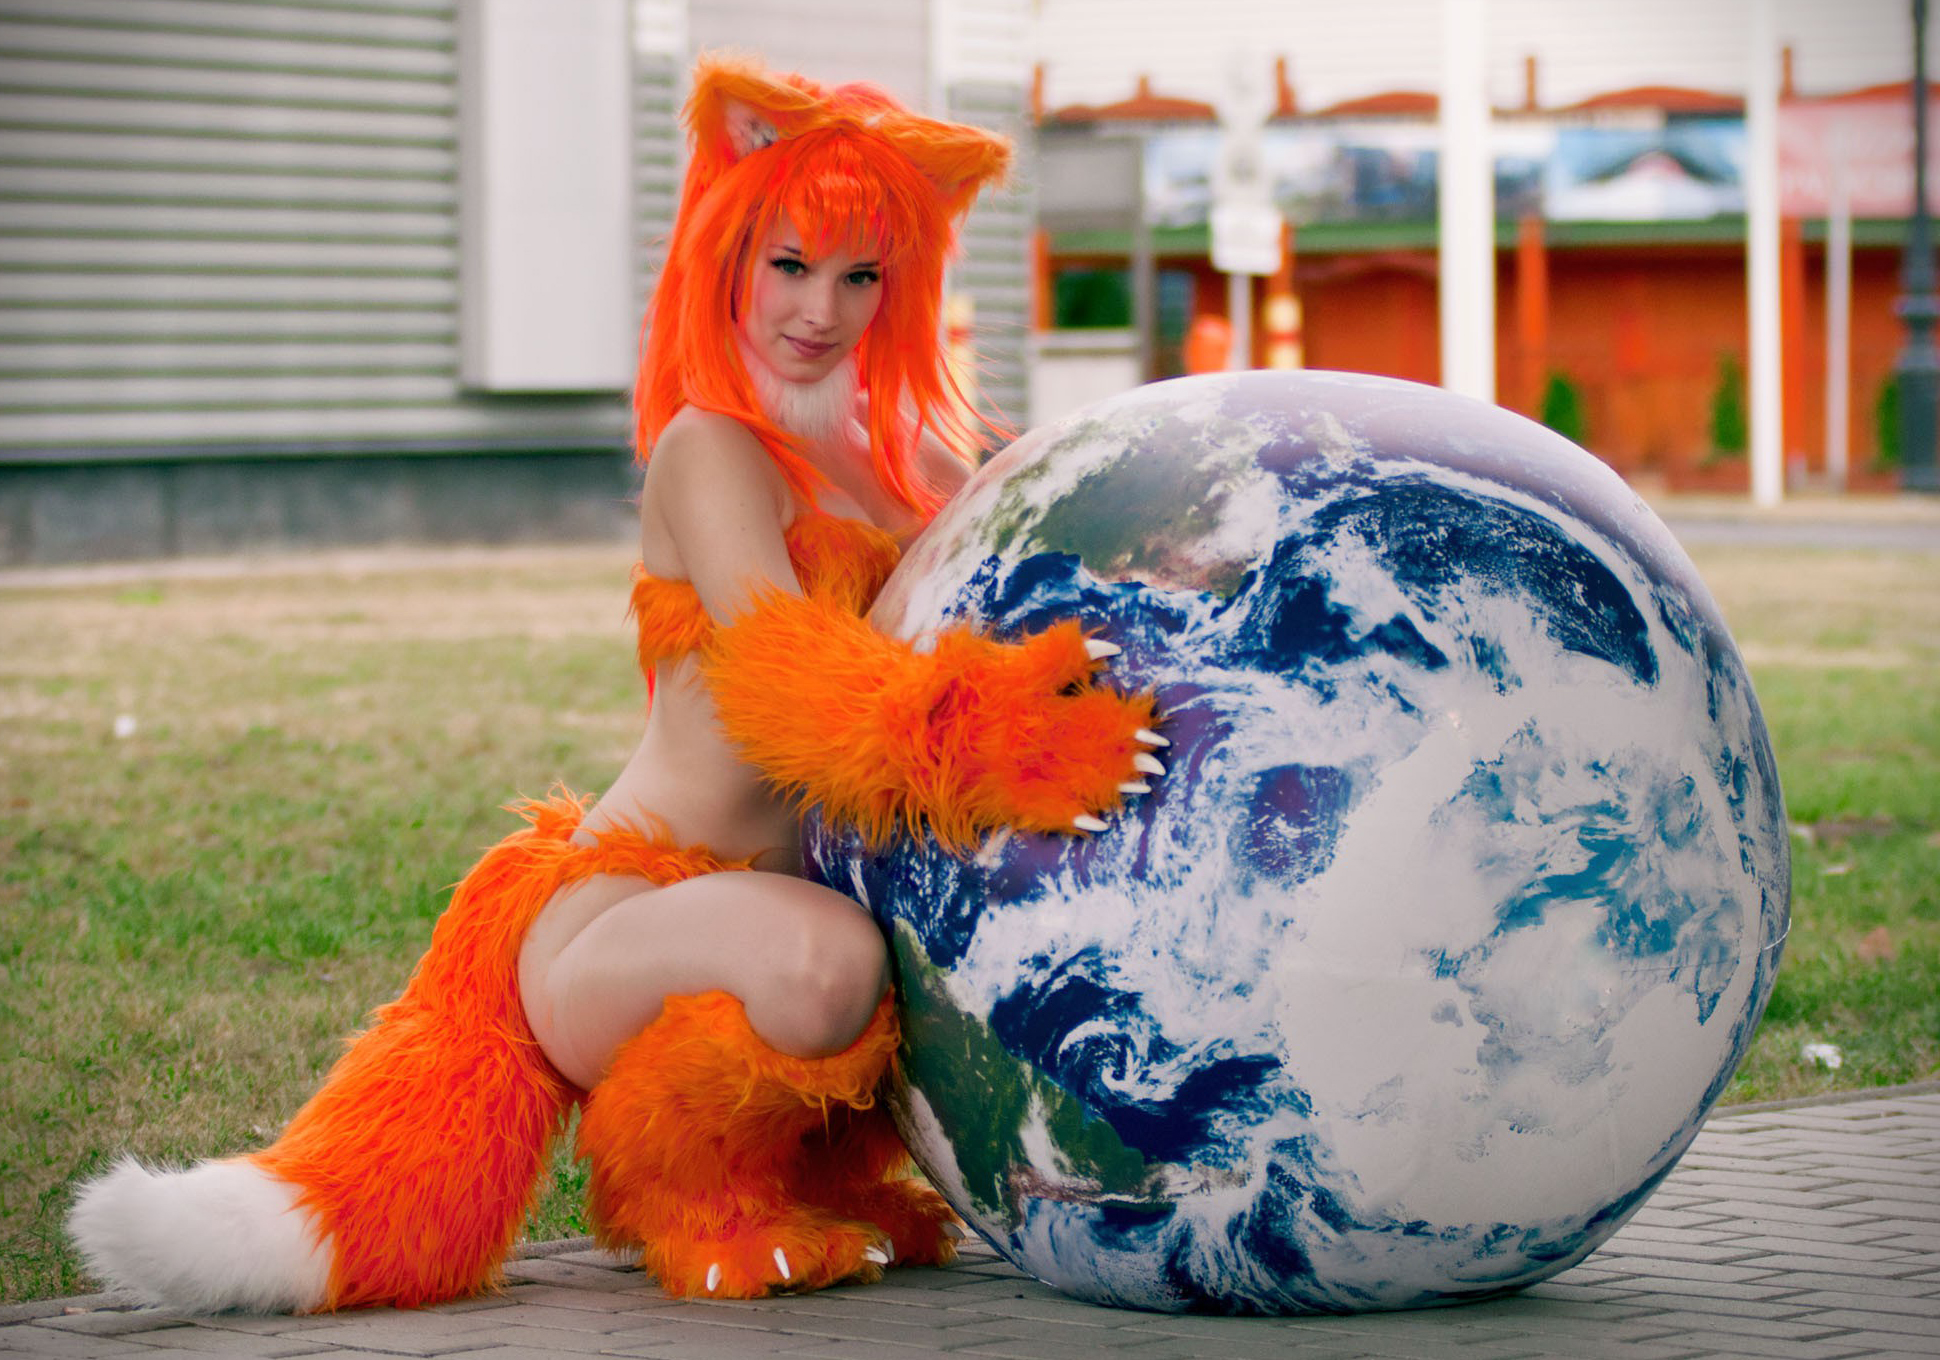 8 - 30 Fine Examples of Cosplay Done Right